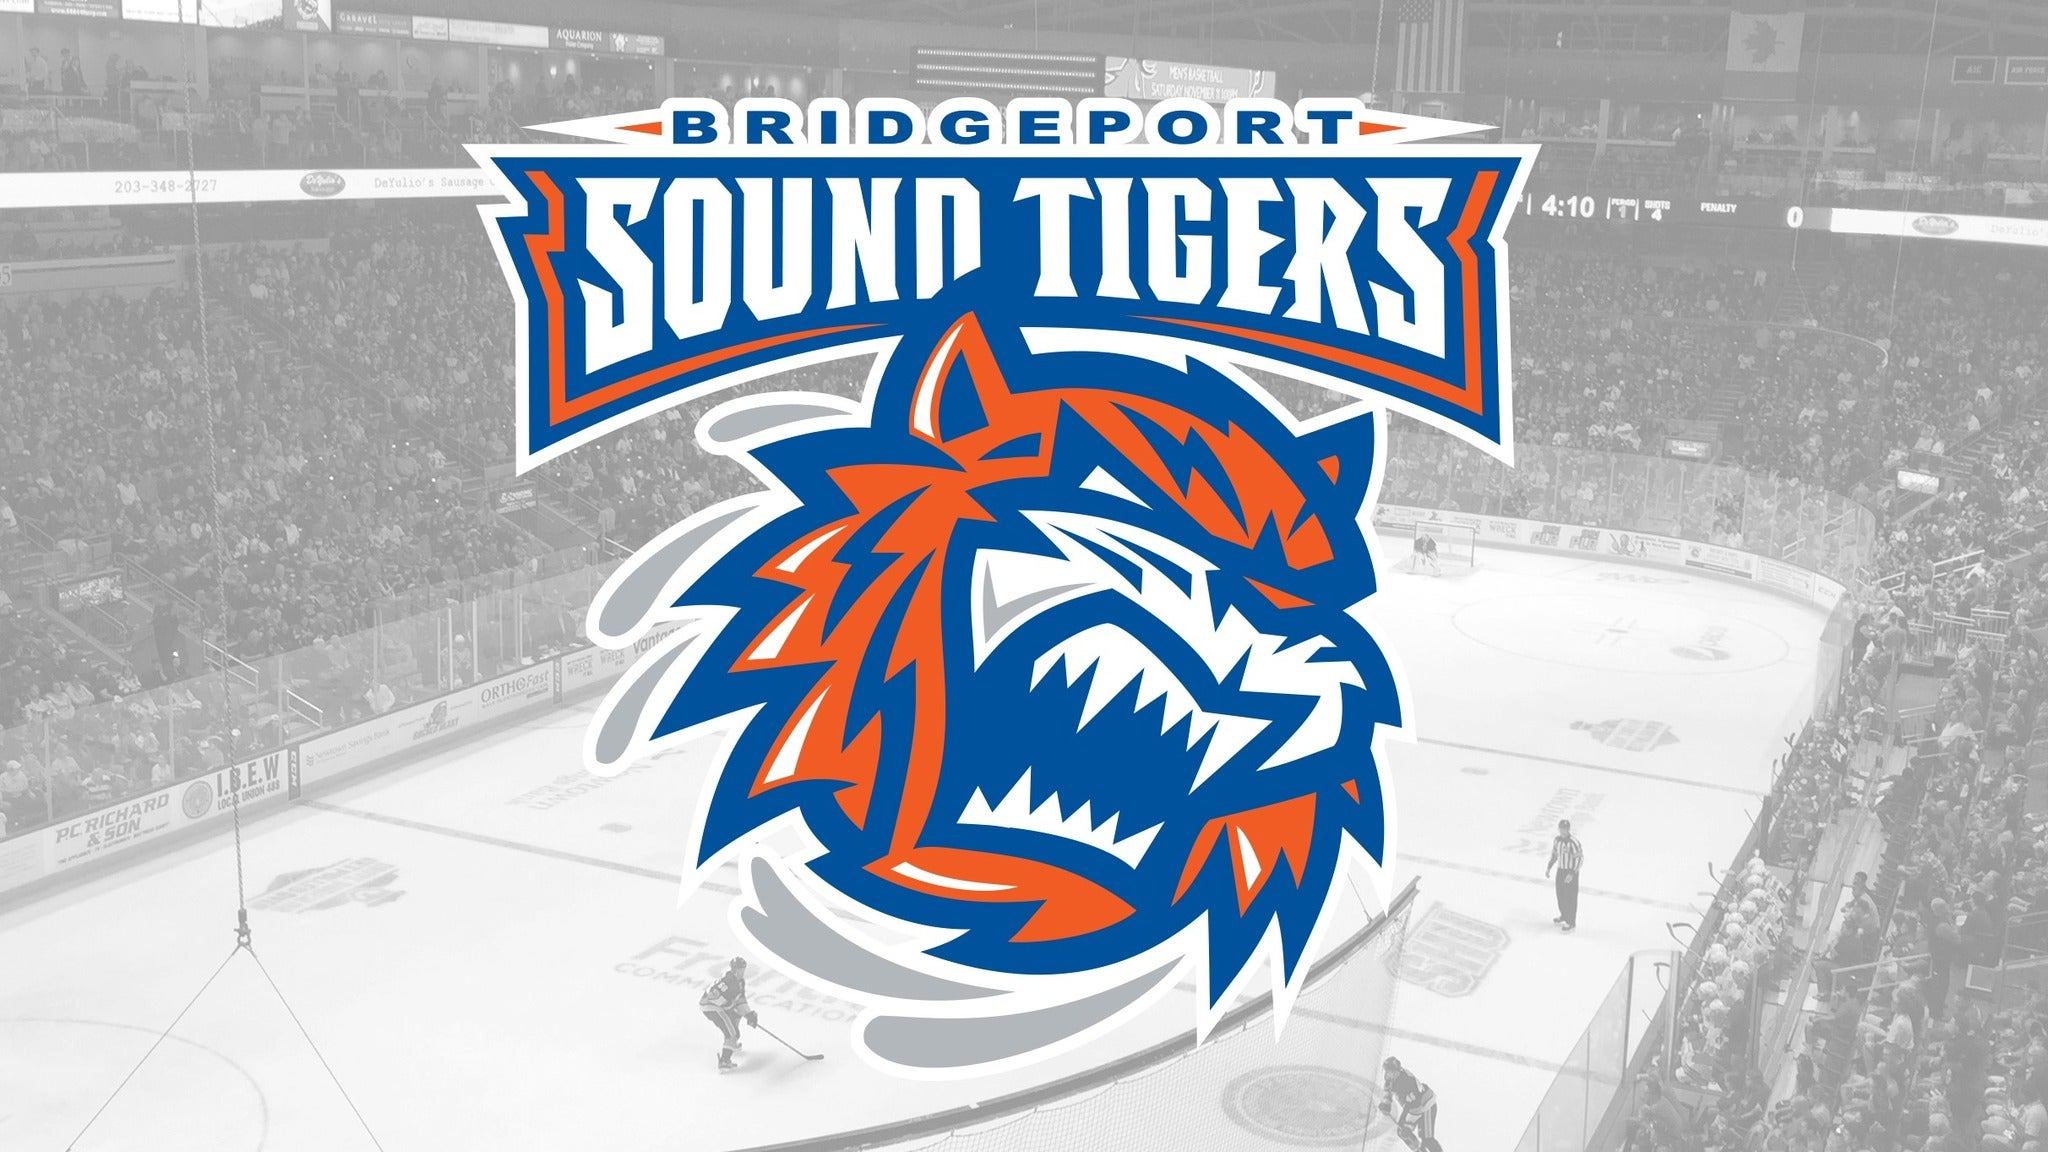 Bridgeport Sound Tigers vs. Providence Bruins